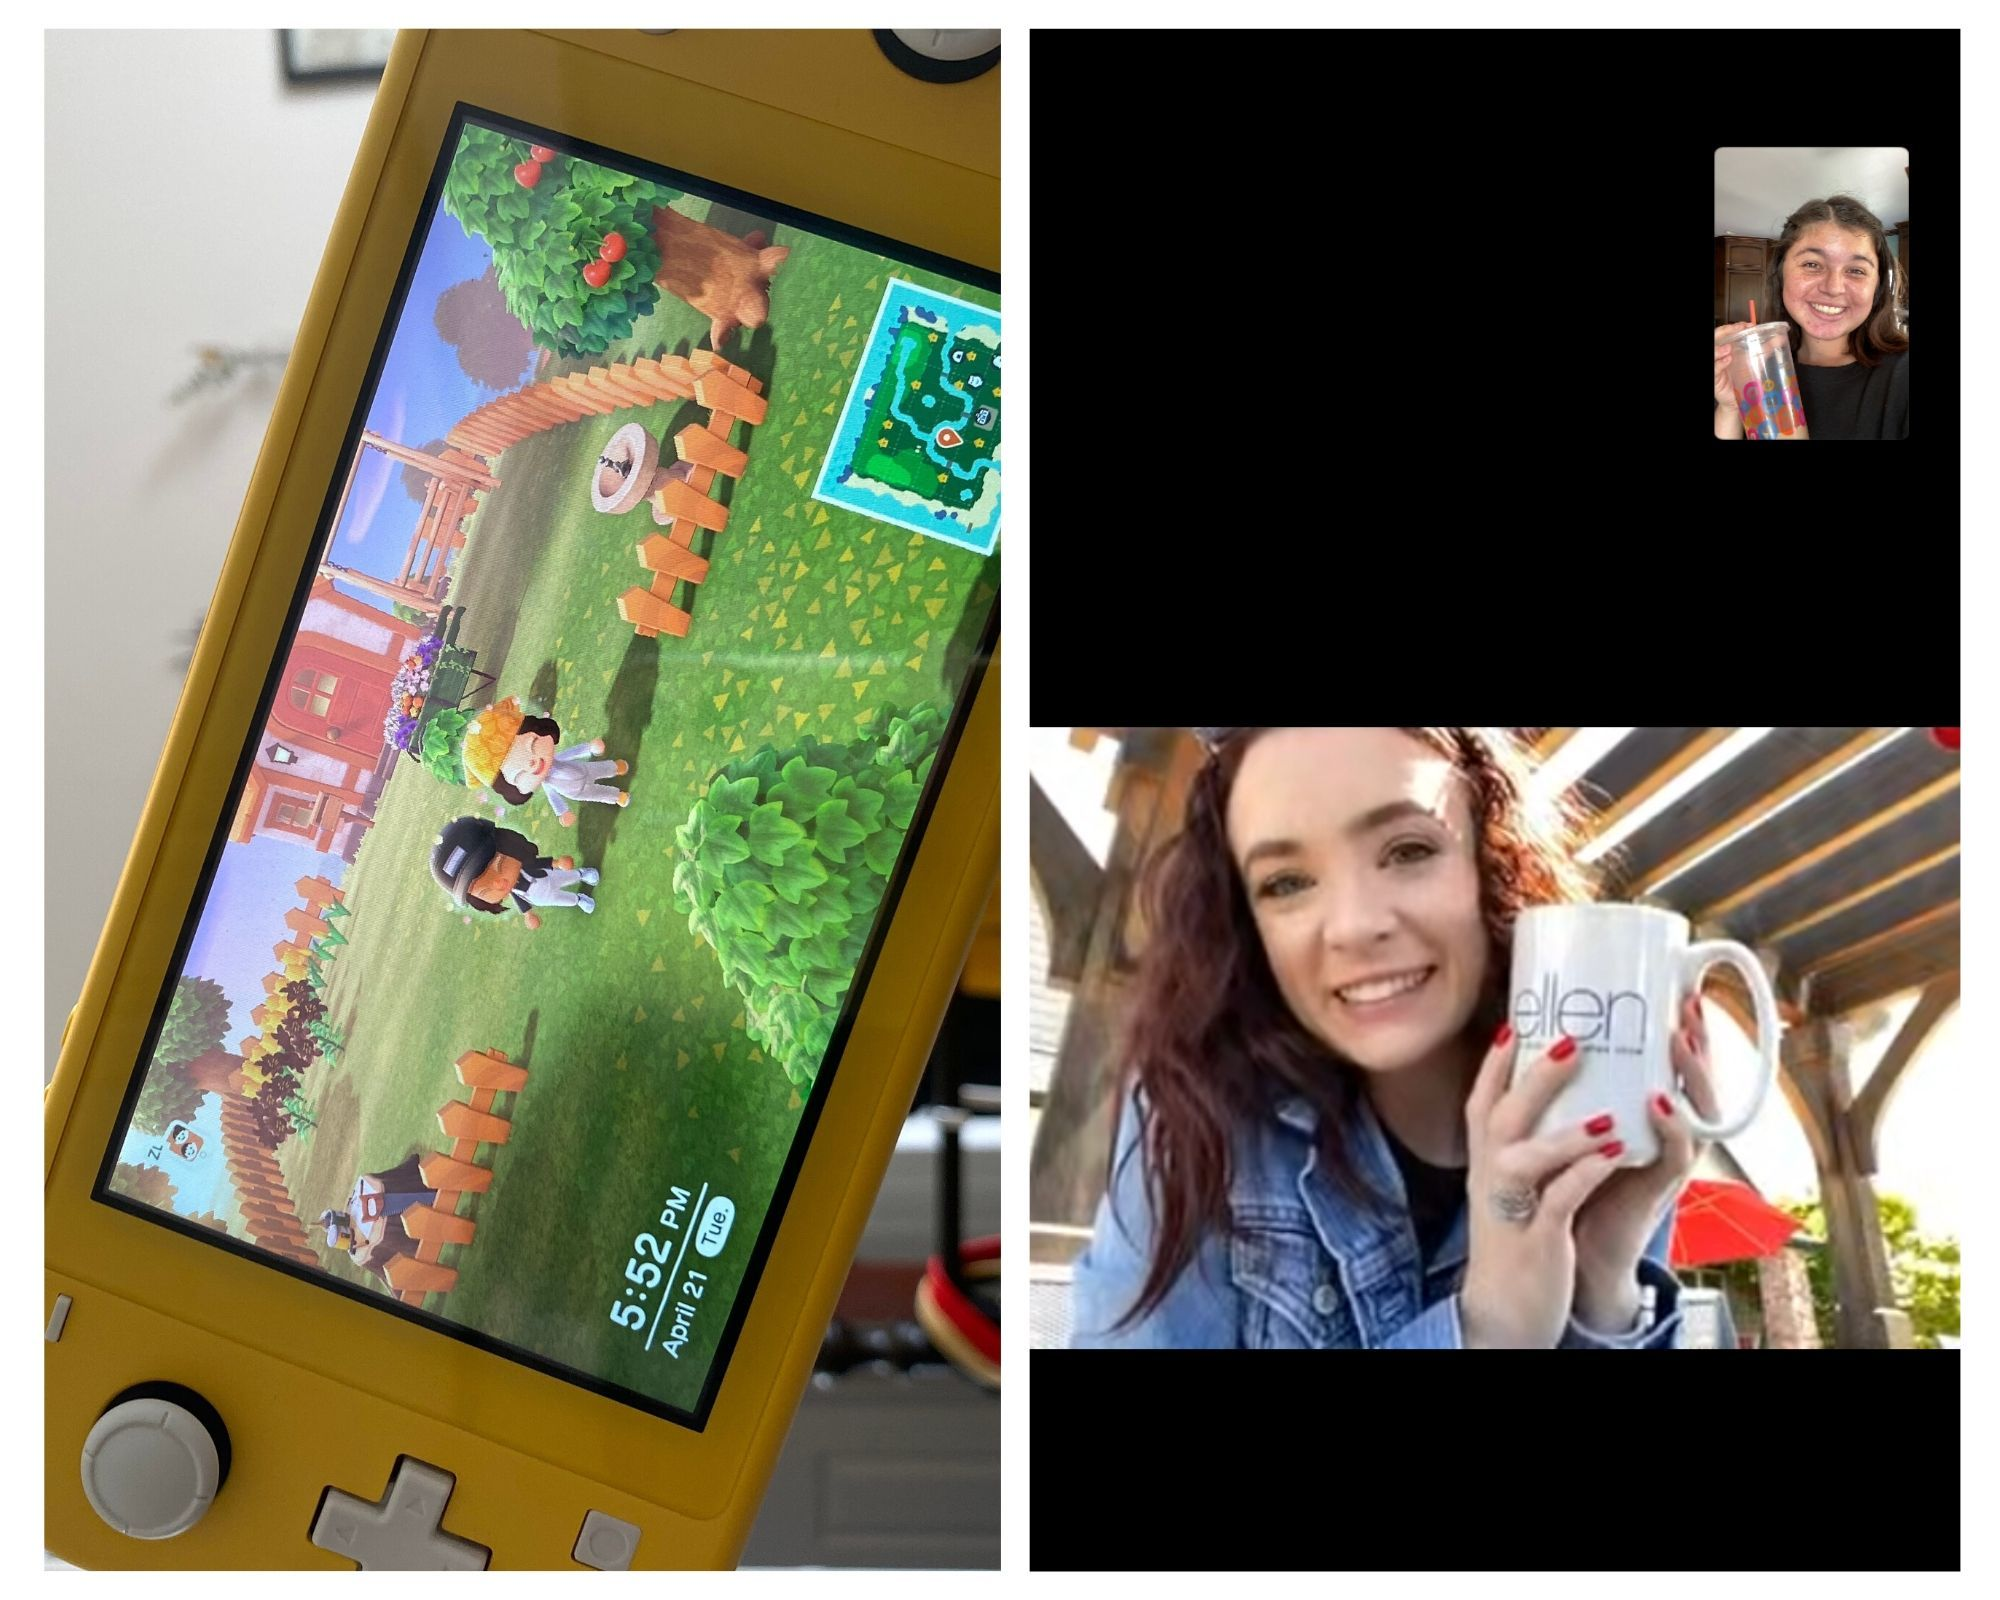 Animal Crossing meet-ups and FaceTime chats